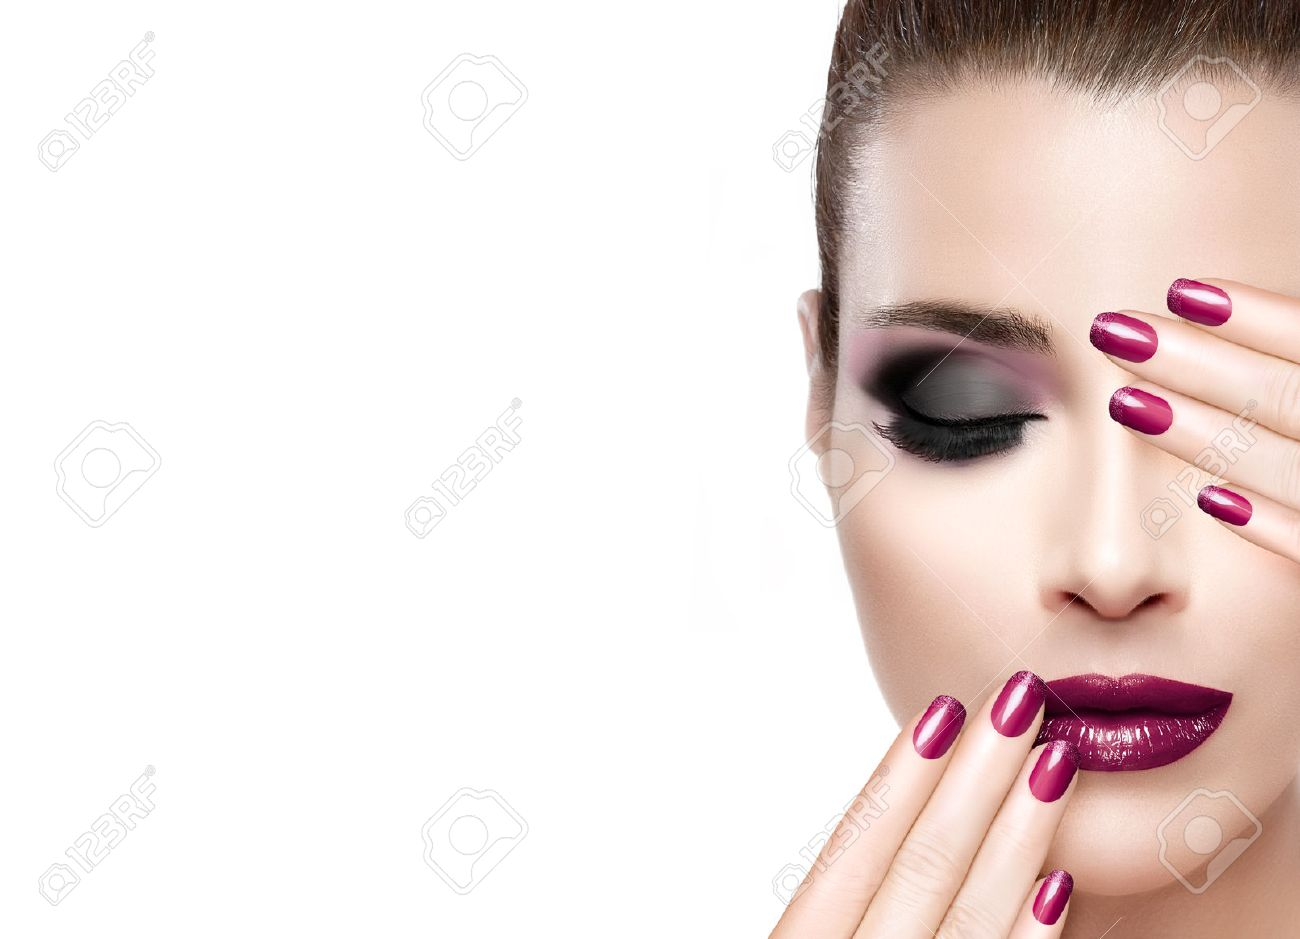 Beautiful Fashion Model Woman With Hands On Face Covering Half Mouth